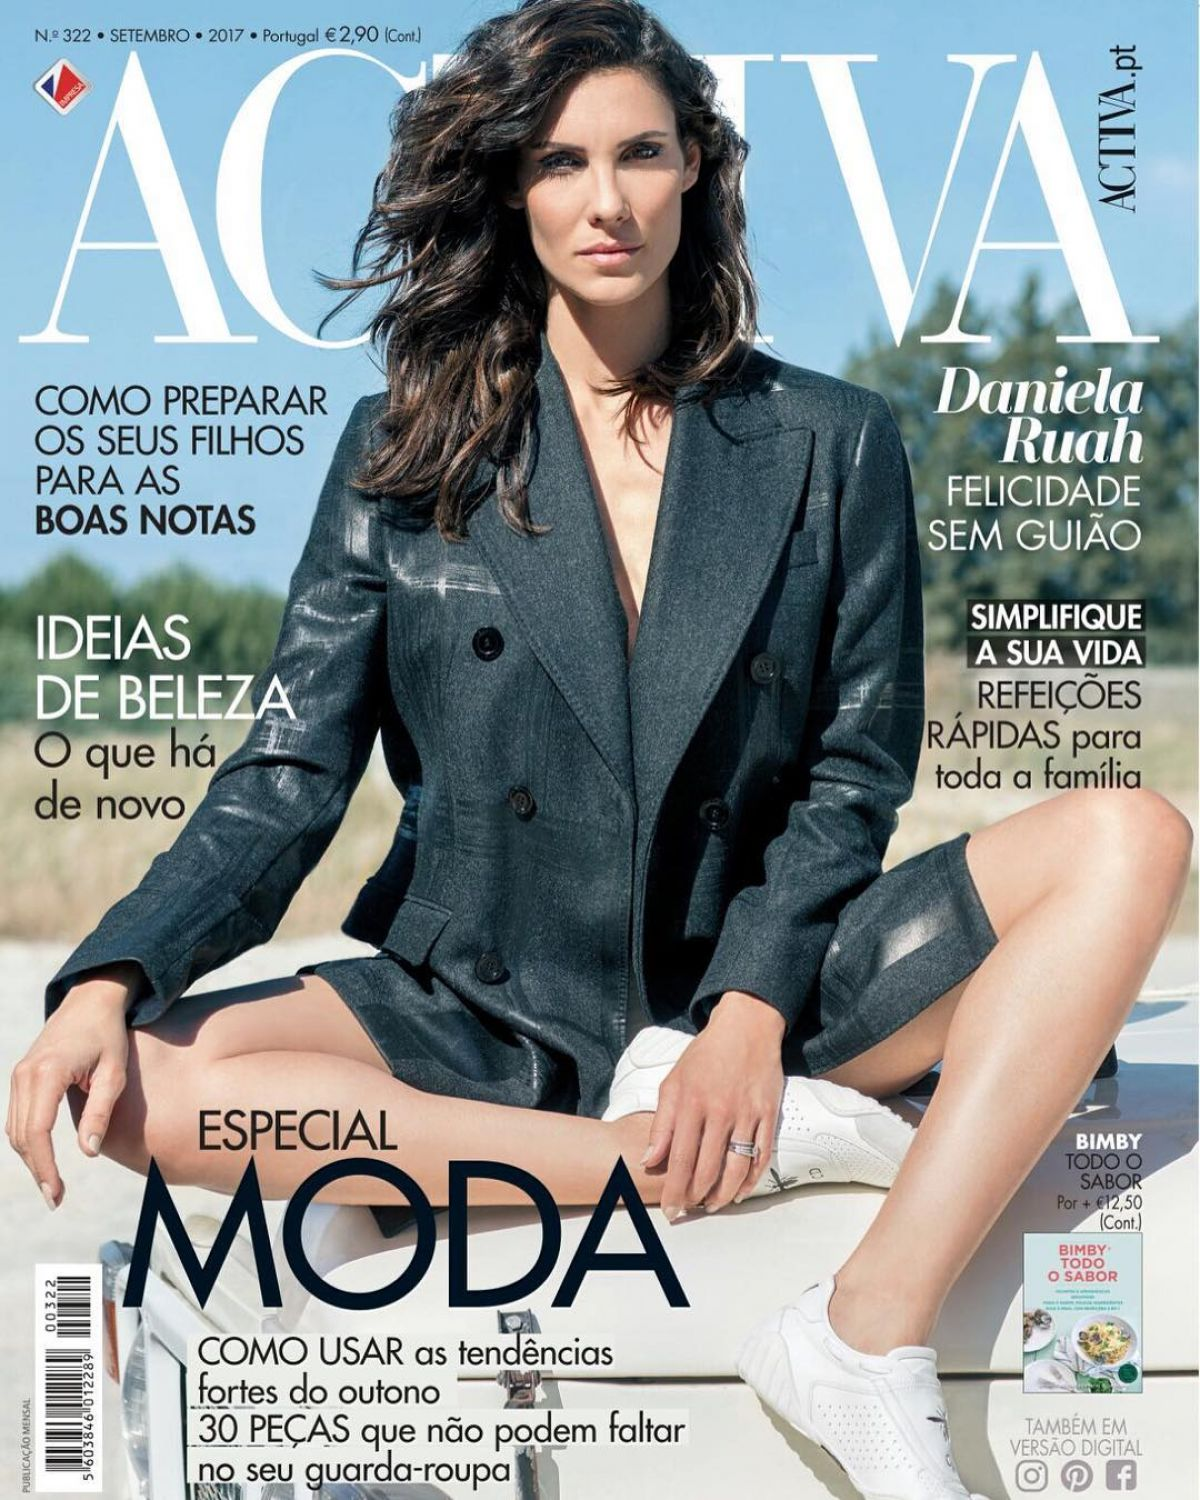 DANIELA RUAH in Revista Activa, September 2017